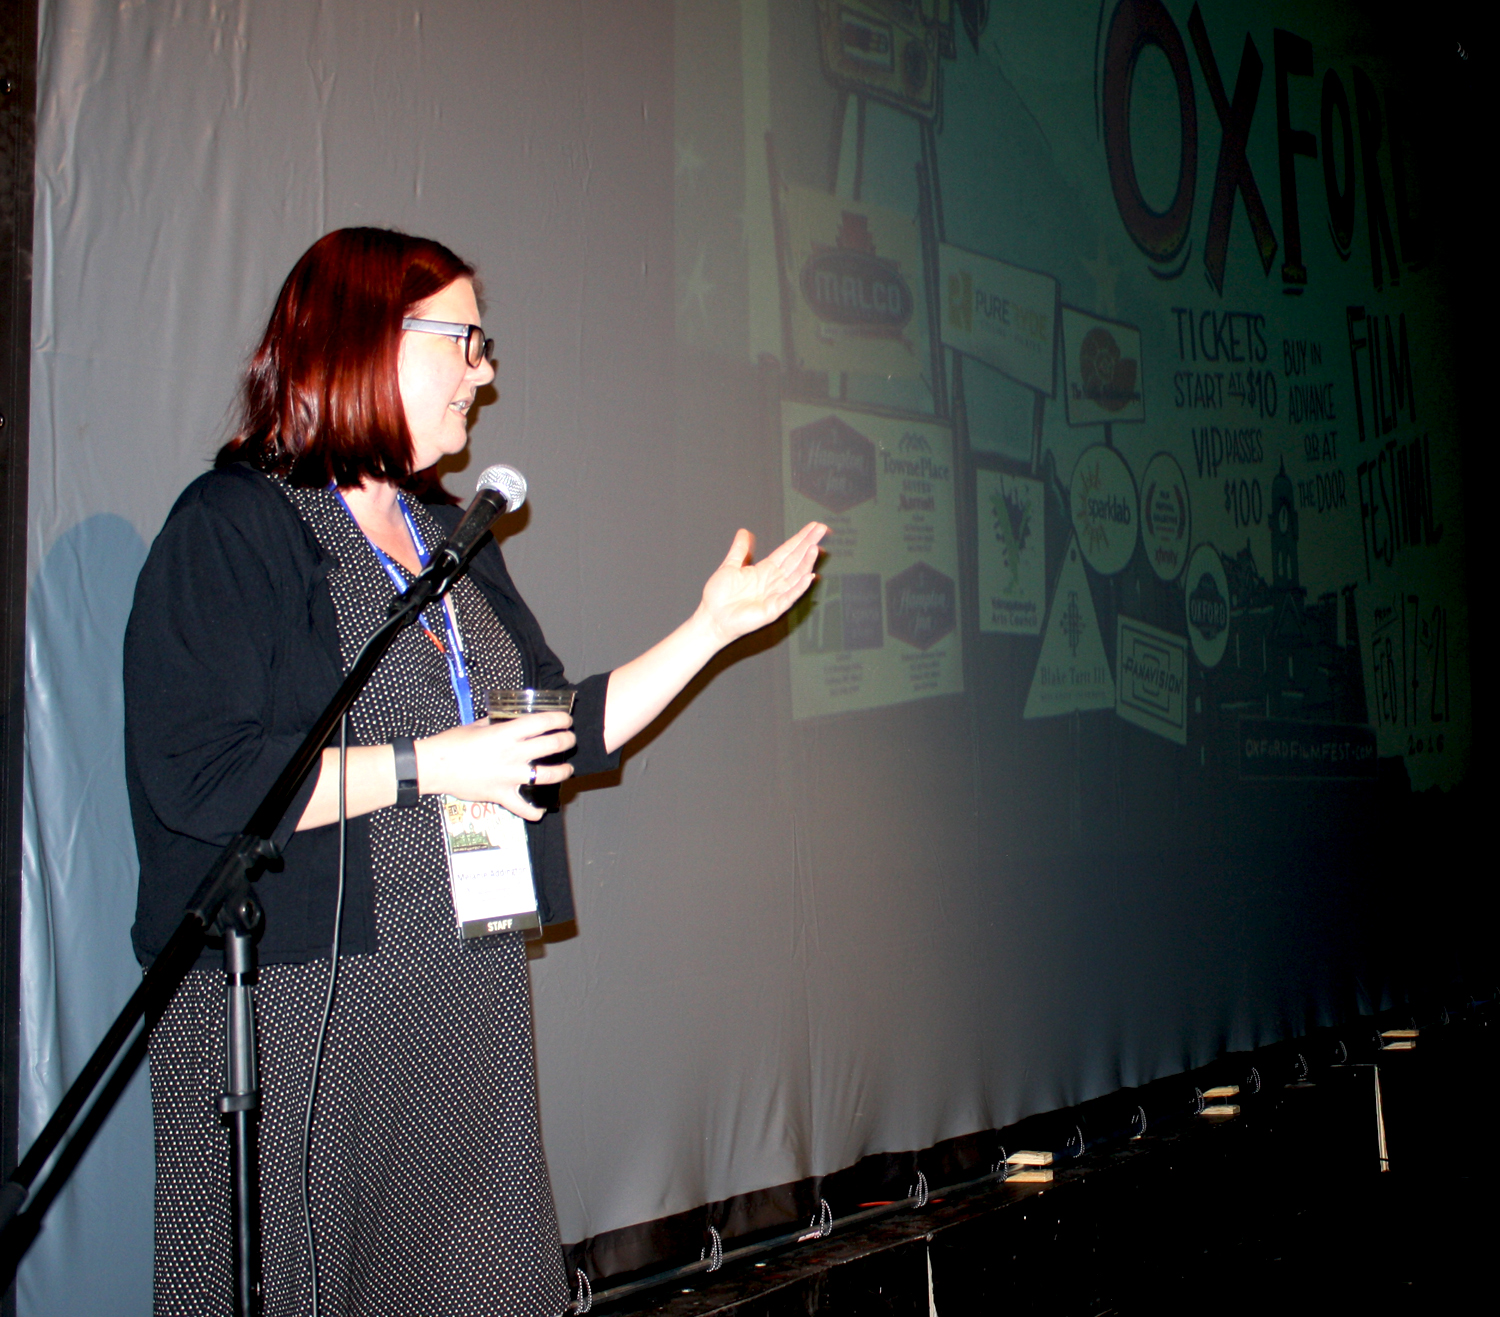 Off executive director Melanie Addington welcomes the masses to the 2016 Oxford Film Festival. Photo by Jeff McVay